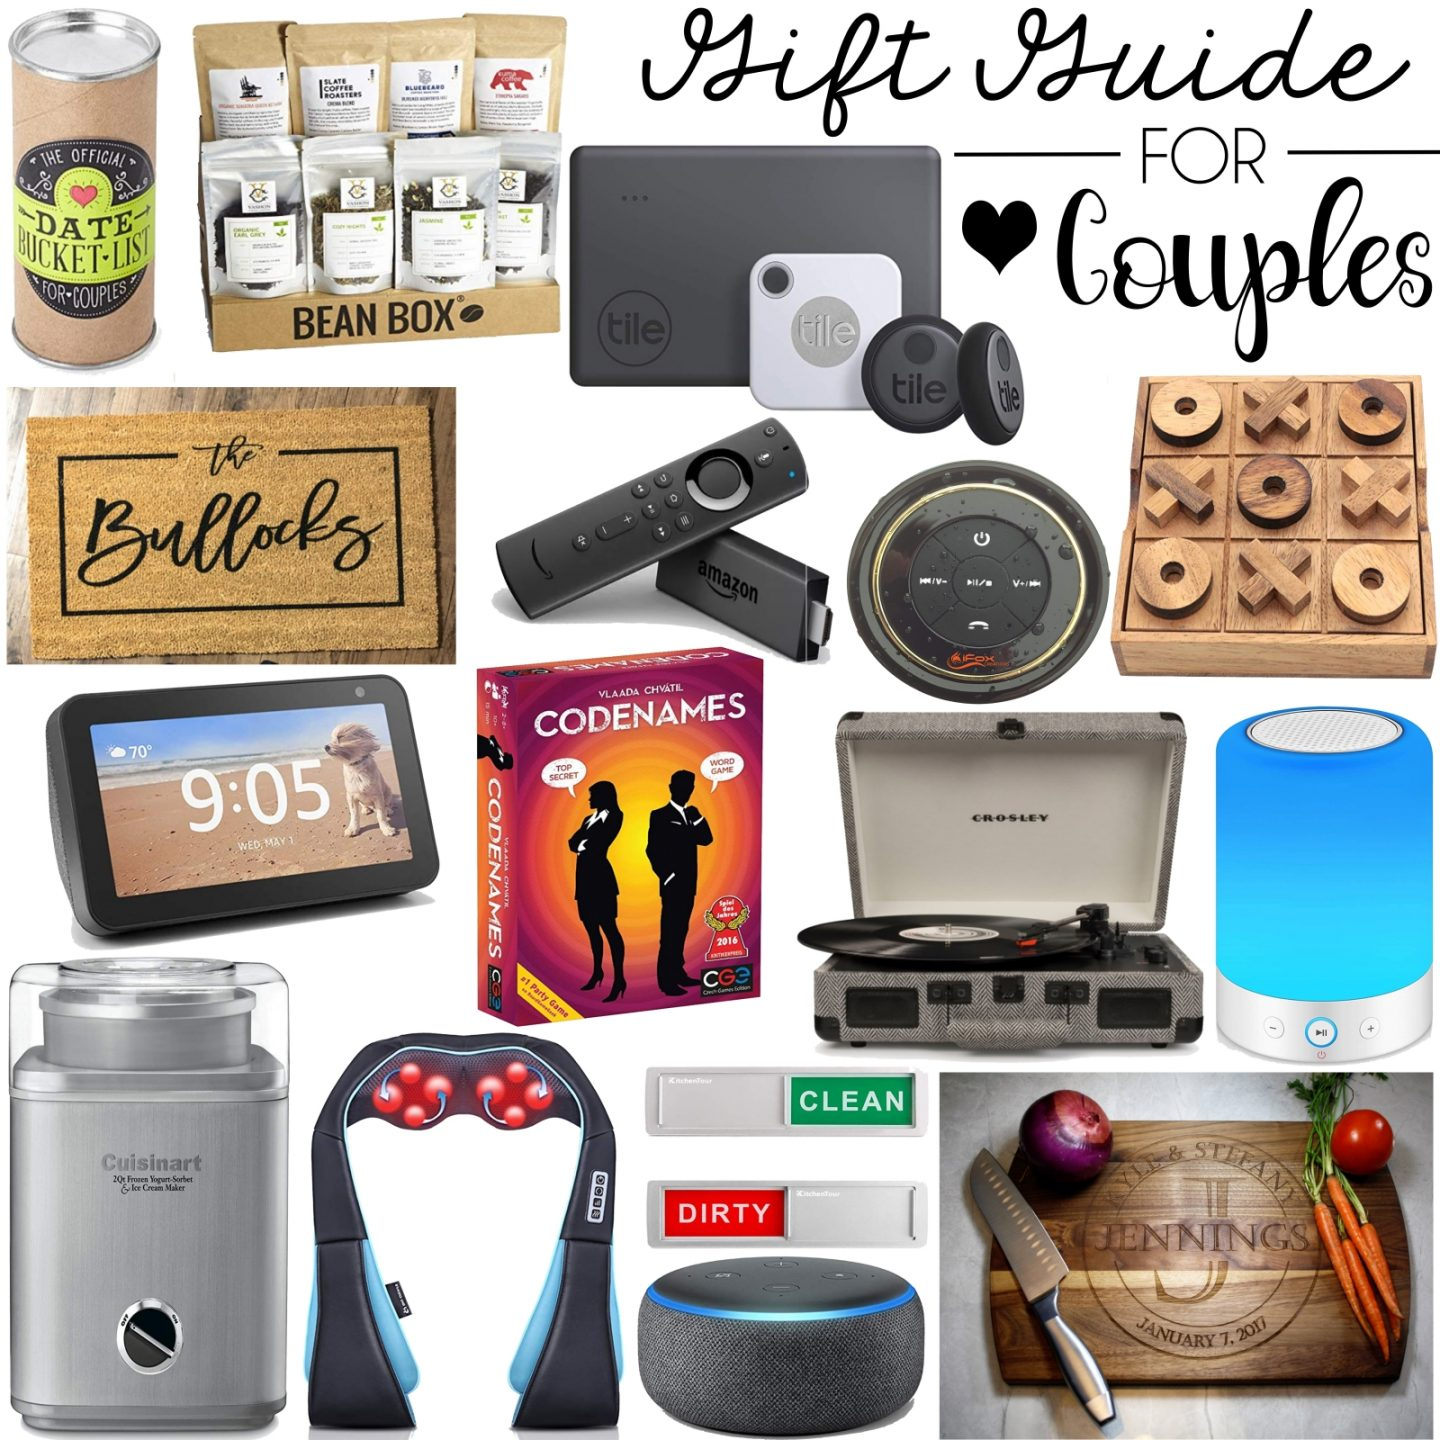 Couples Gift Ideas To Buy For The Joint Christmas Presents On Your List